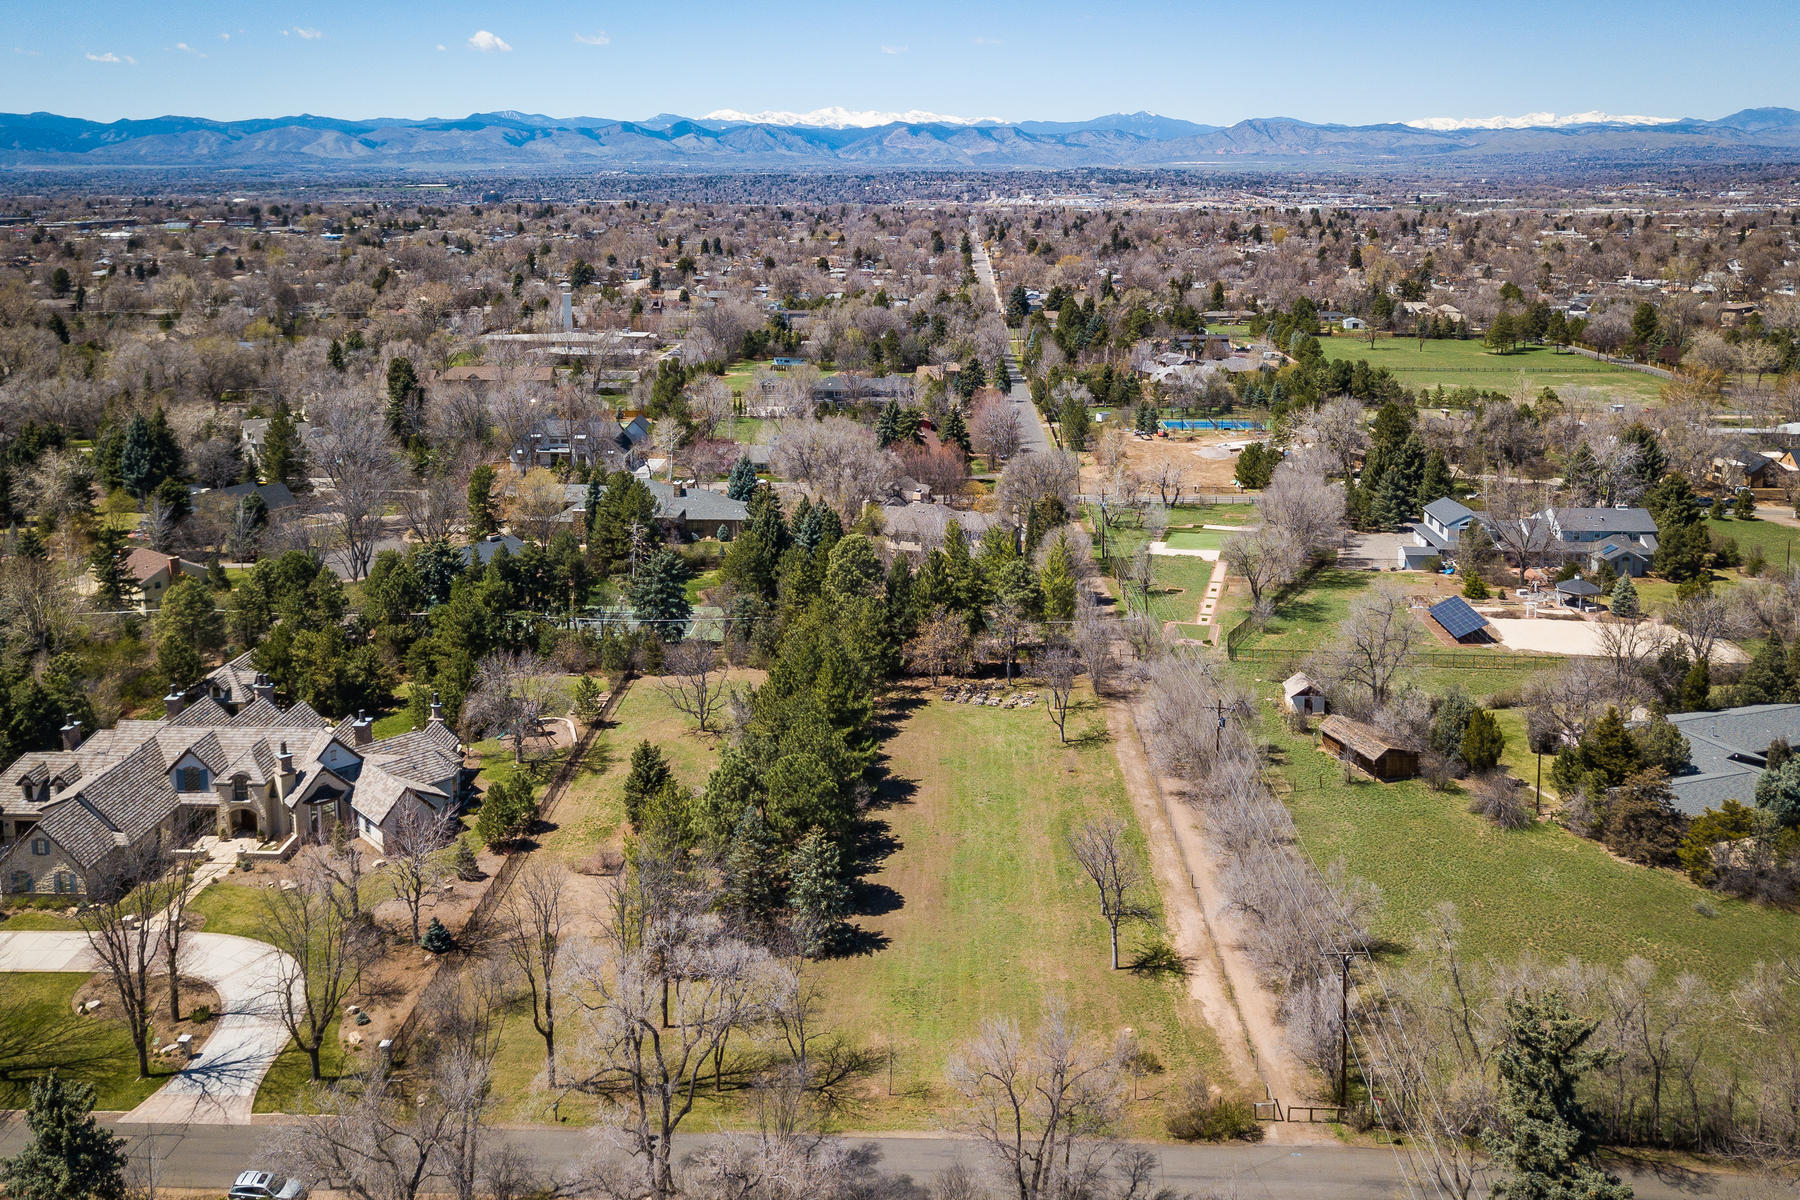 Terreno para Venda às Gorgeous Park-Like 1.46 Acre Development Site in the Heart of Old Cherry Hills 4525 S Lafayette St, Englewood, Colorado 80113 Estados Unidos